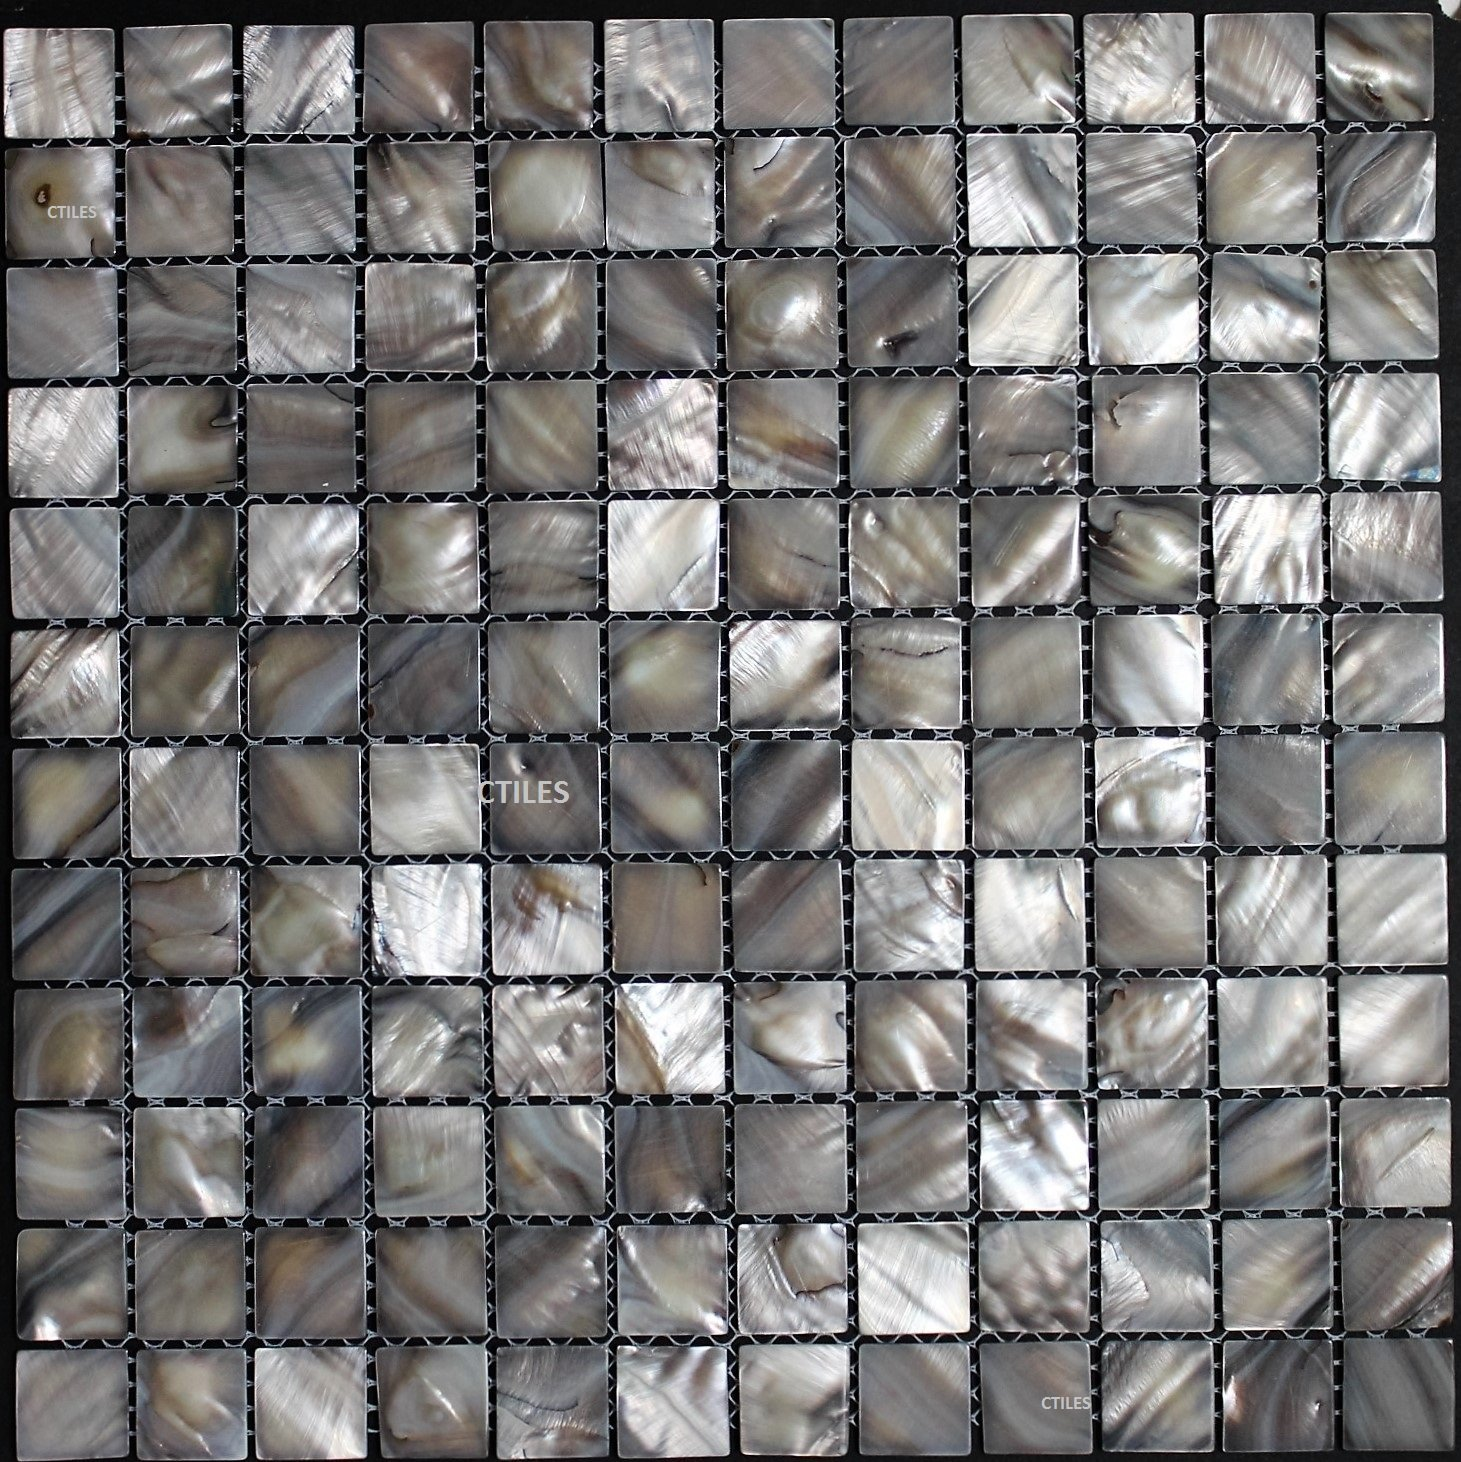 Mother of pearl tile square ash grey shell tiles for backsplash bathroom walls and floors